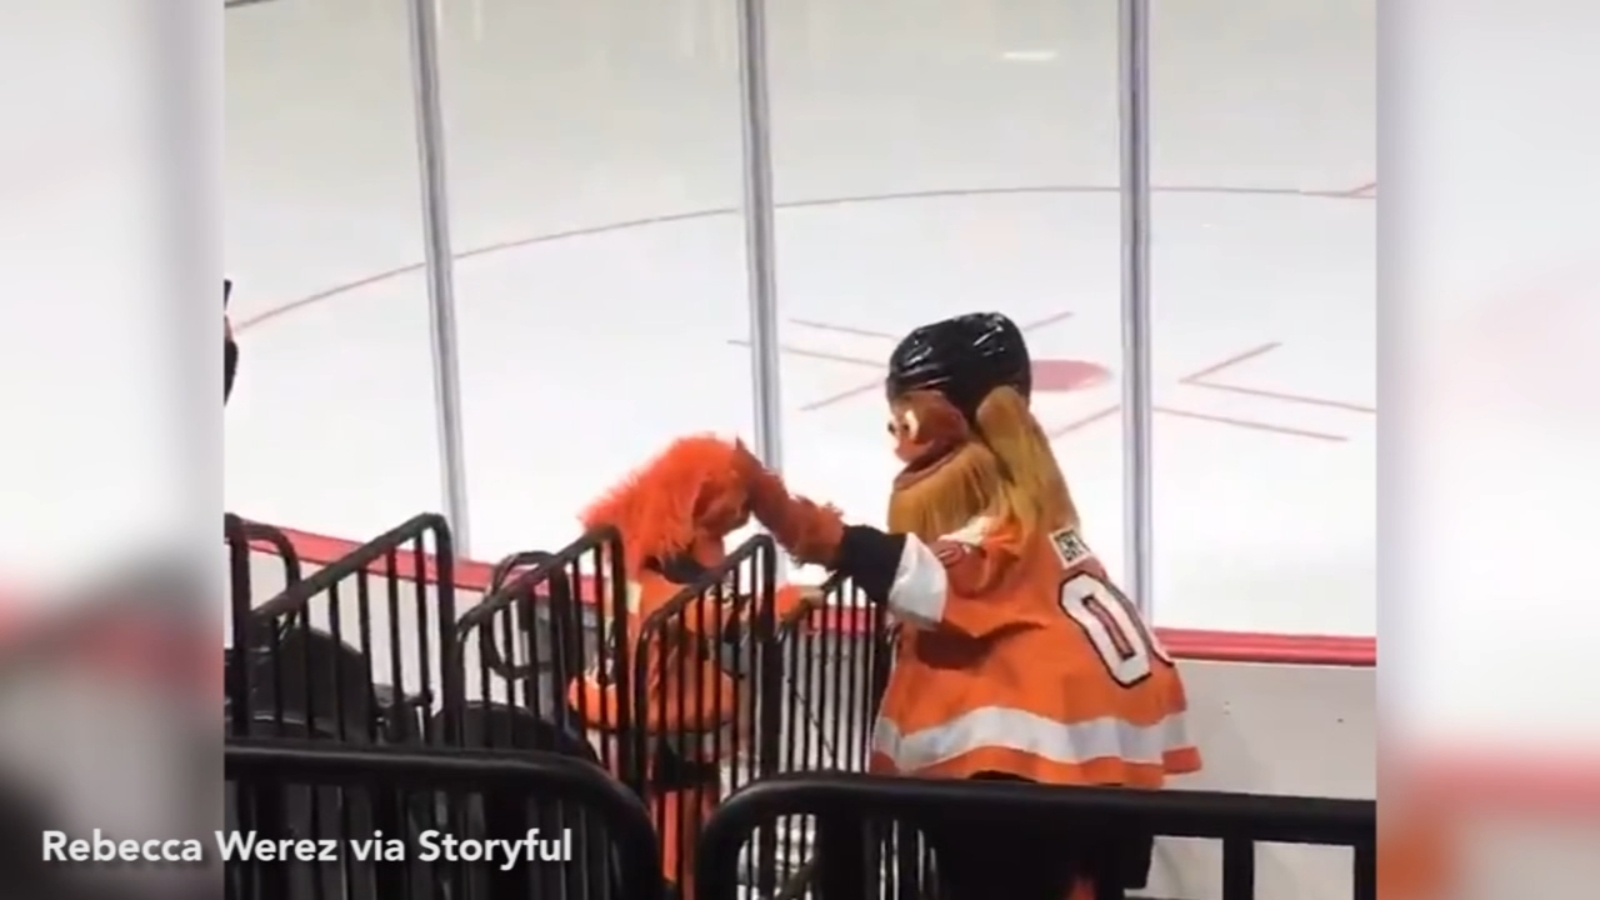 Little Gritty meets big Gritty in adorable video